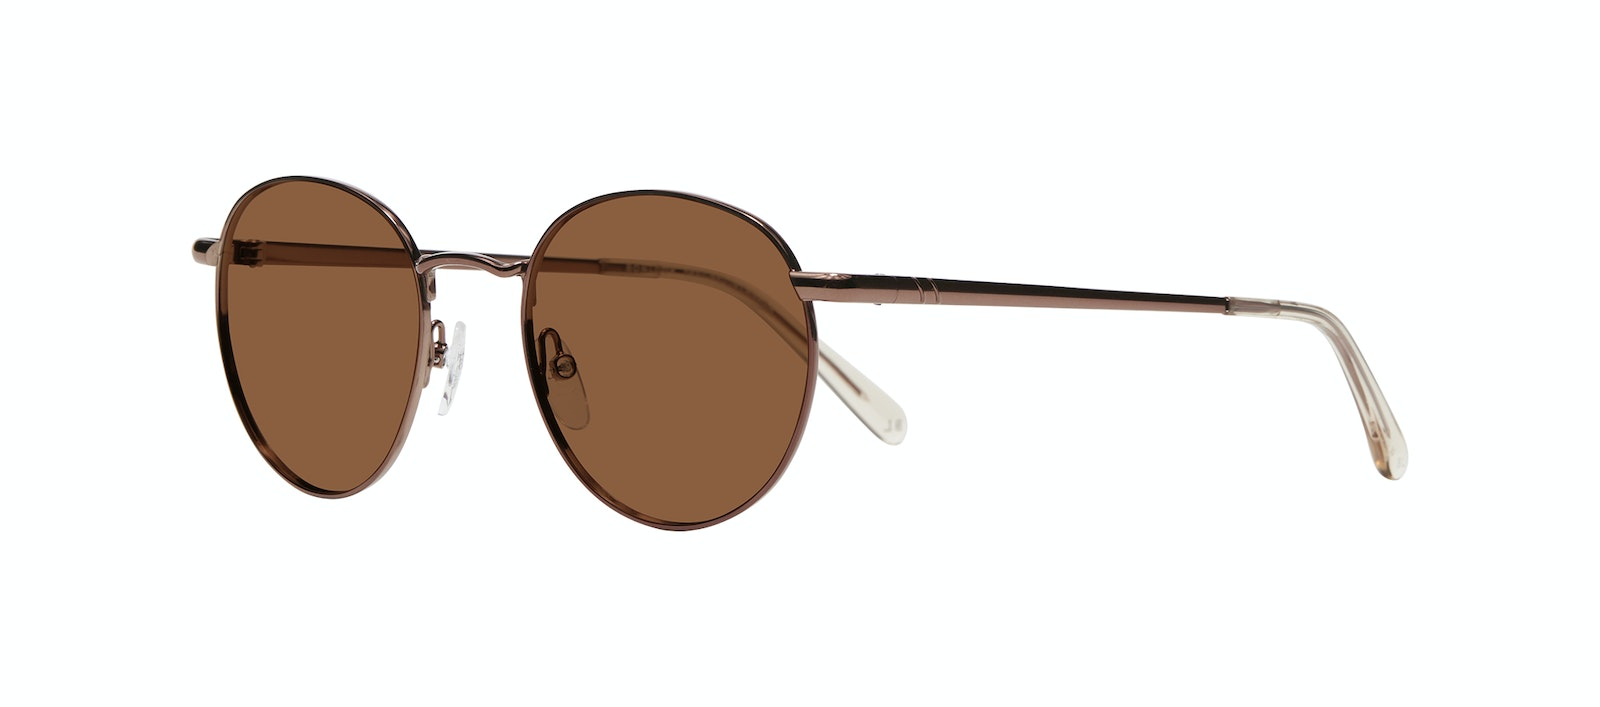 Affordable Fashion Glasses Round Sunglasses Women Dynasty M Copper Tilt